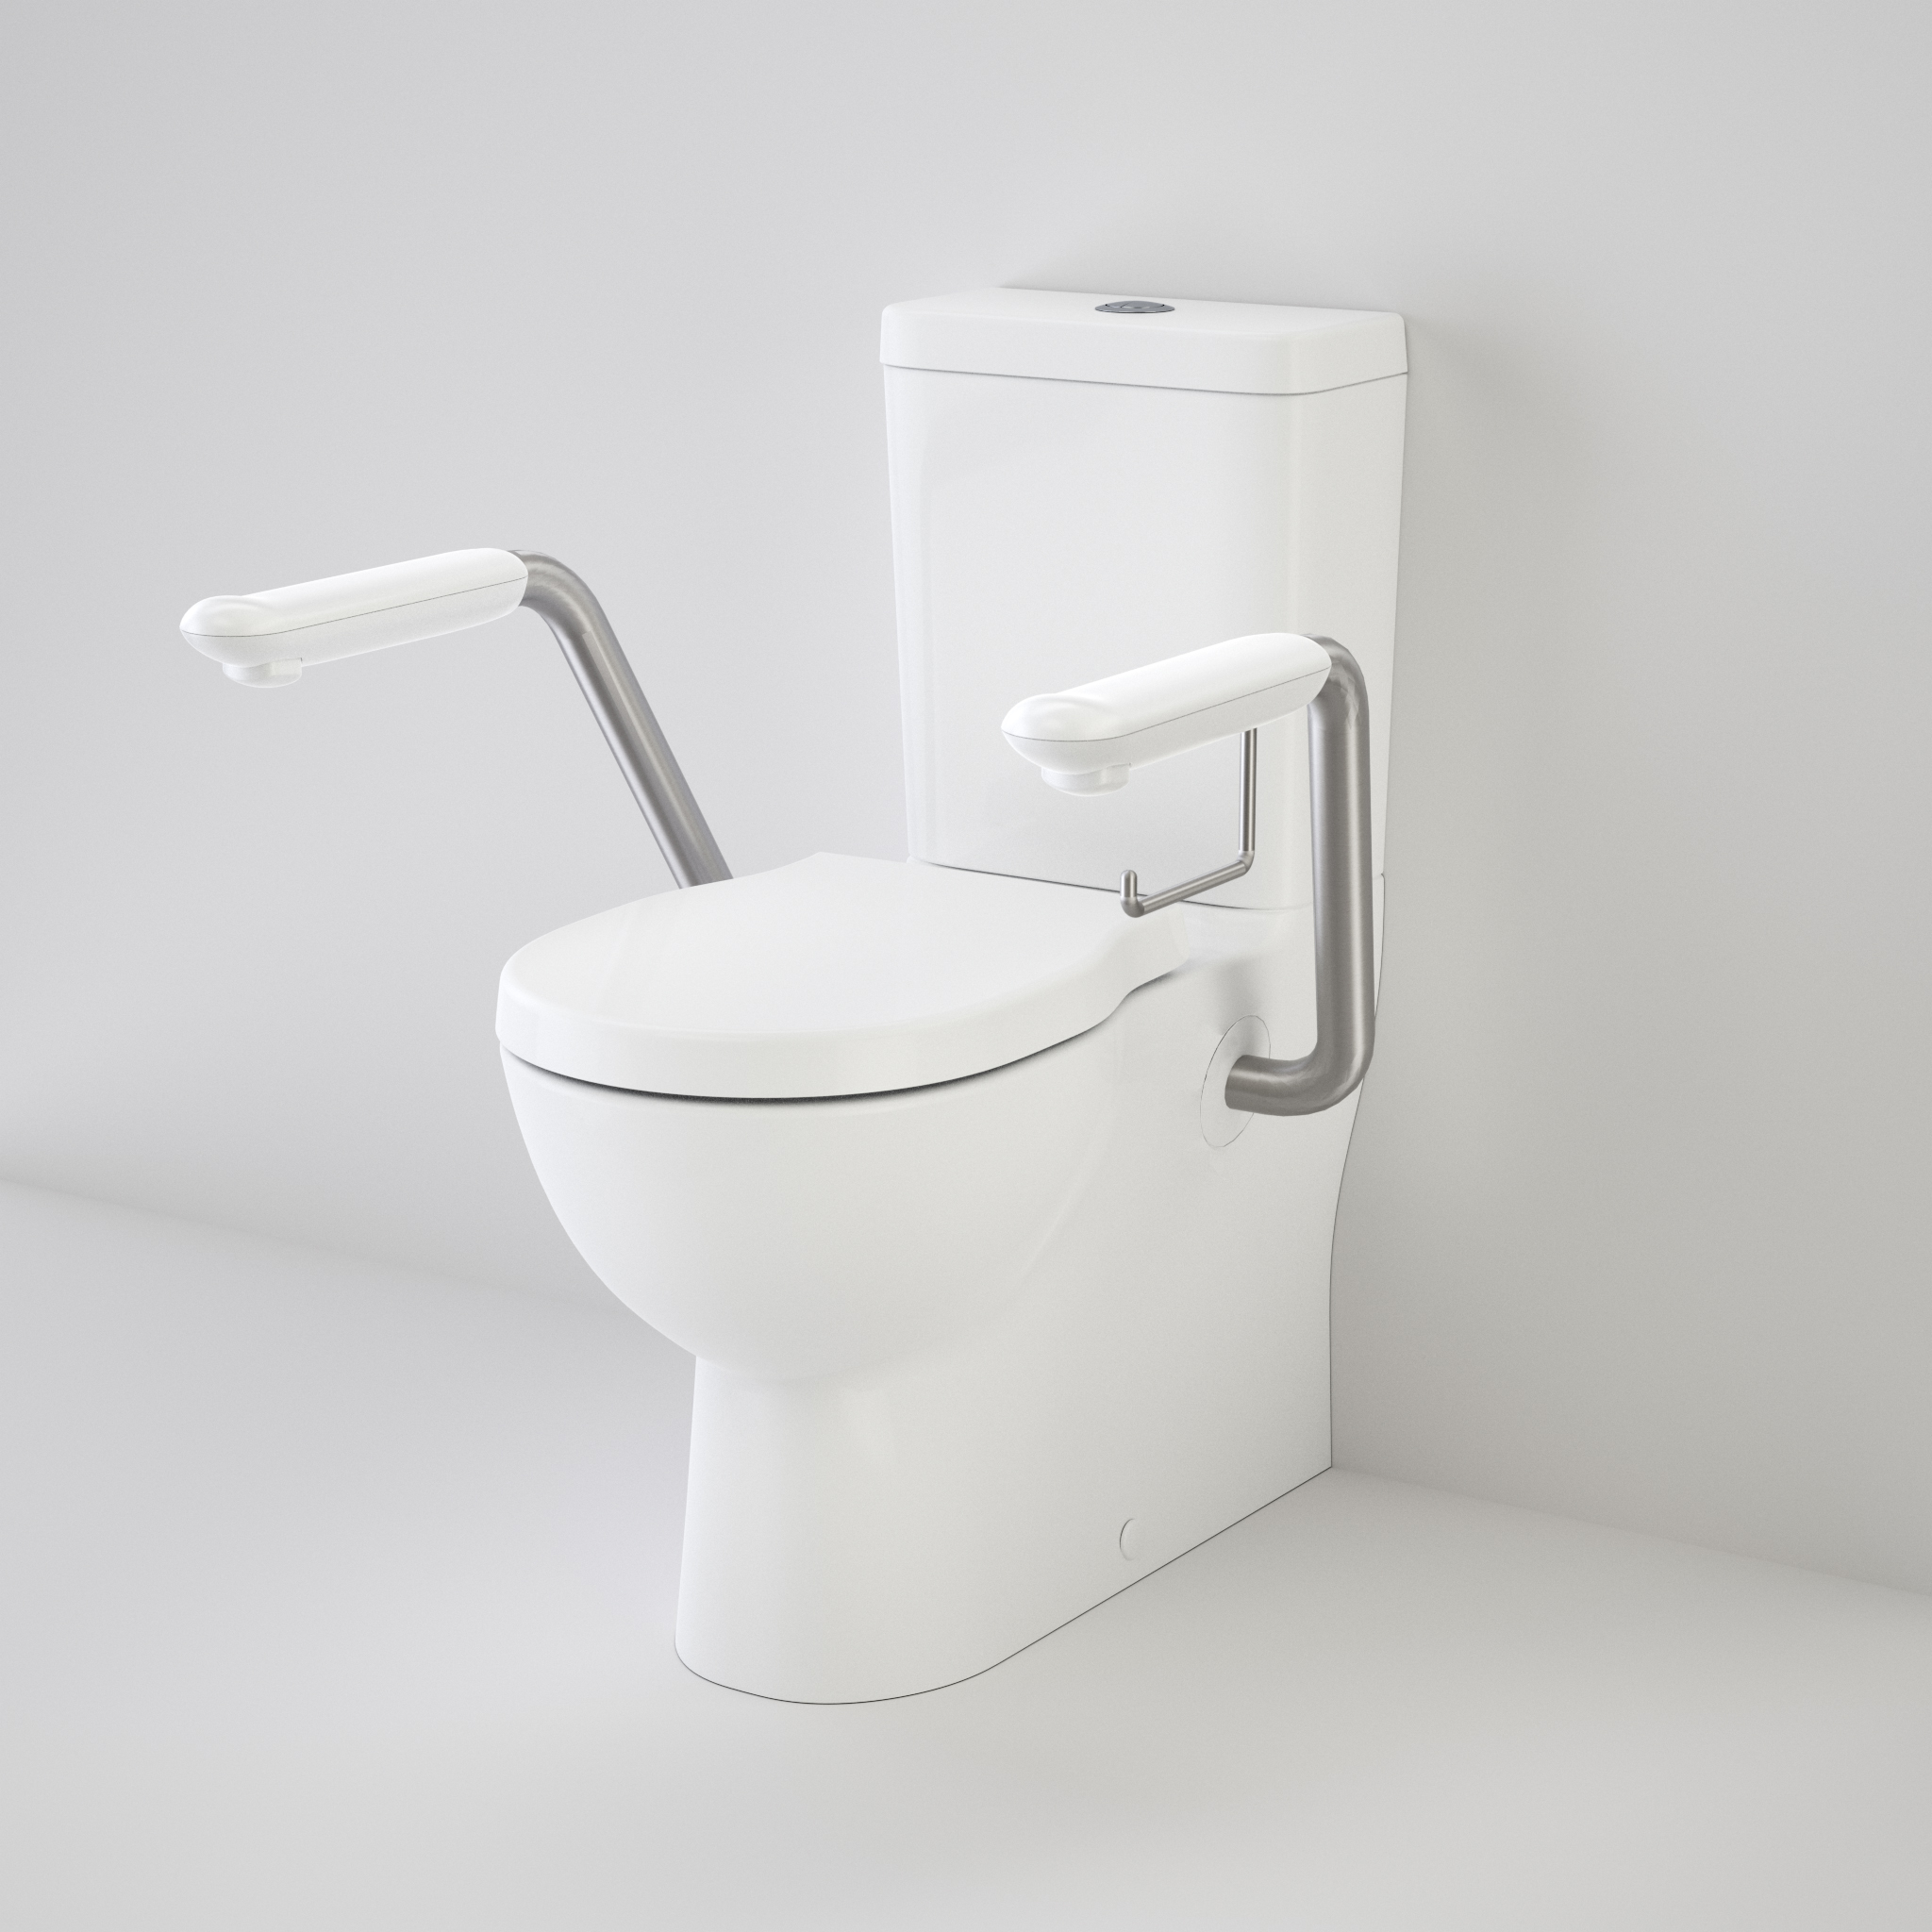 Caroma invisi series ii concealed cistern easy access.